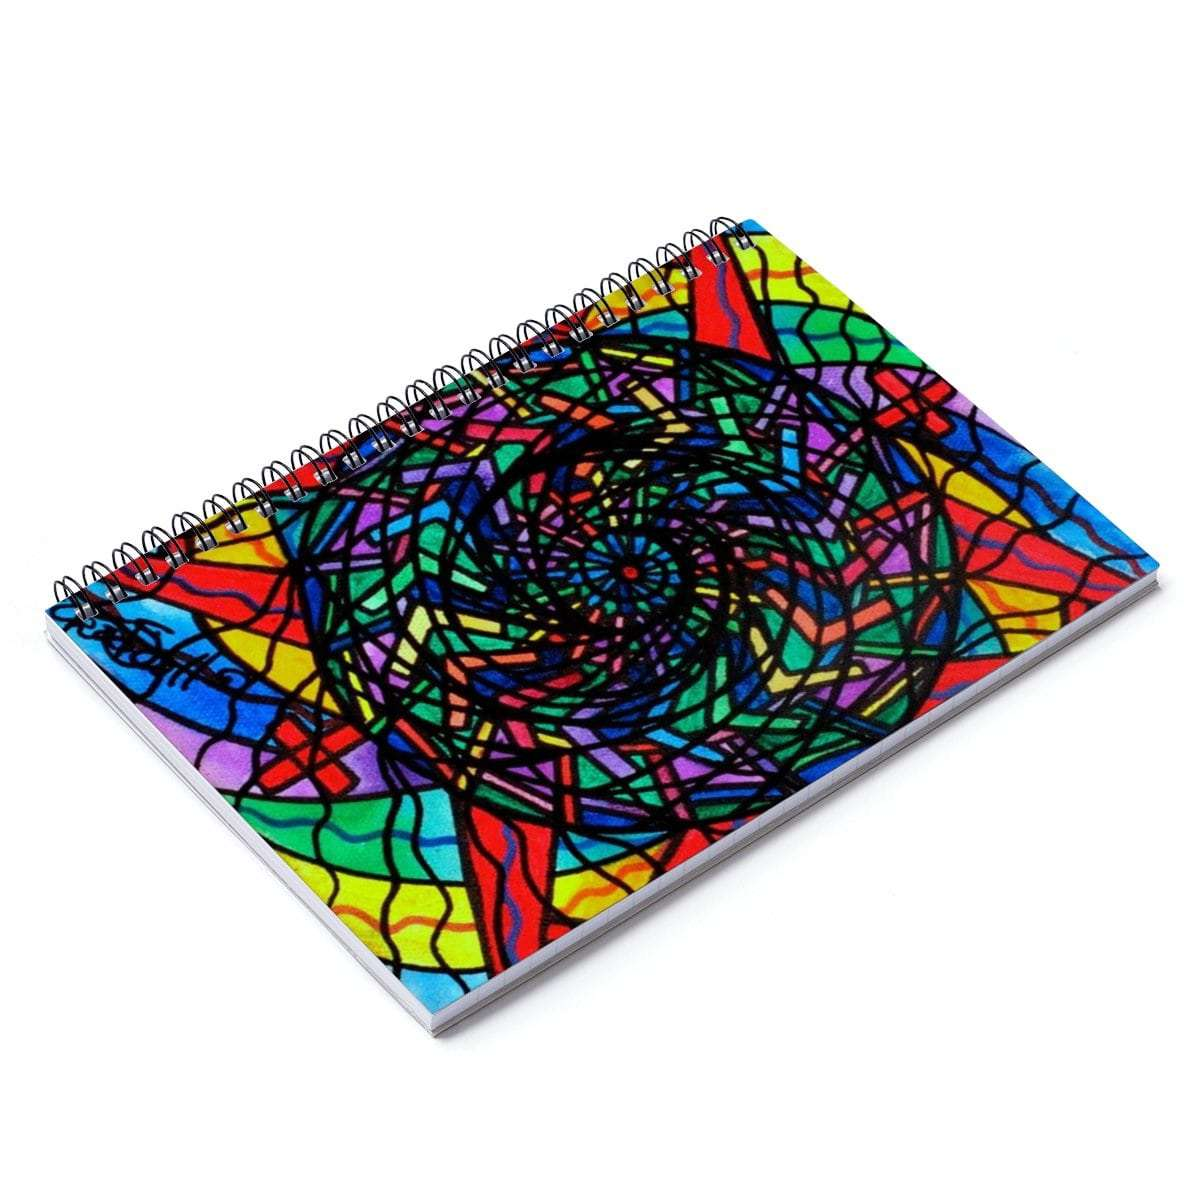 Academic Fullfillment - Spiral Notebook